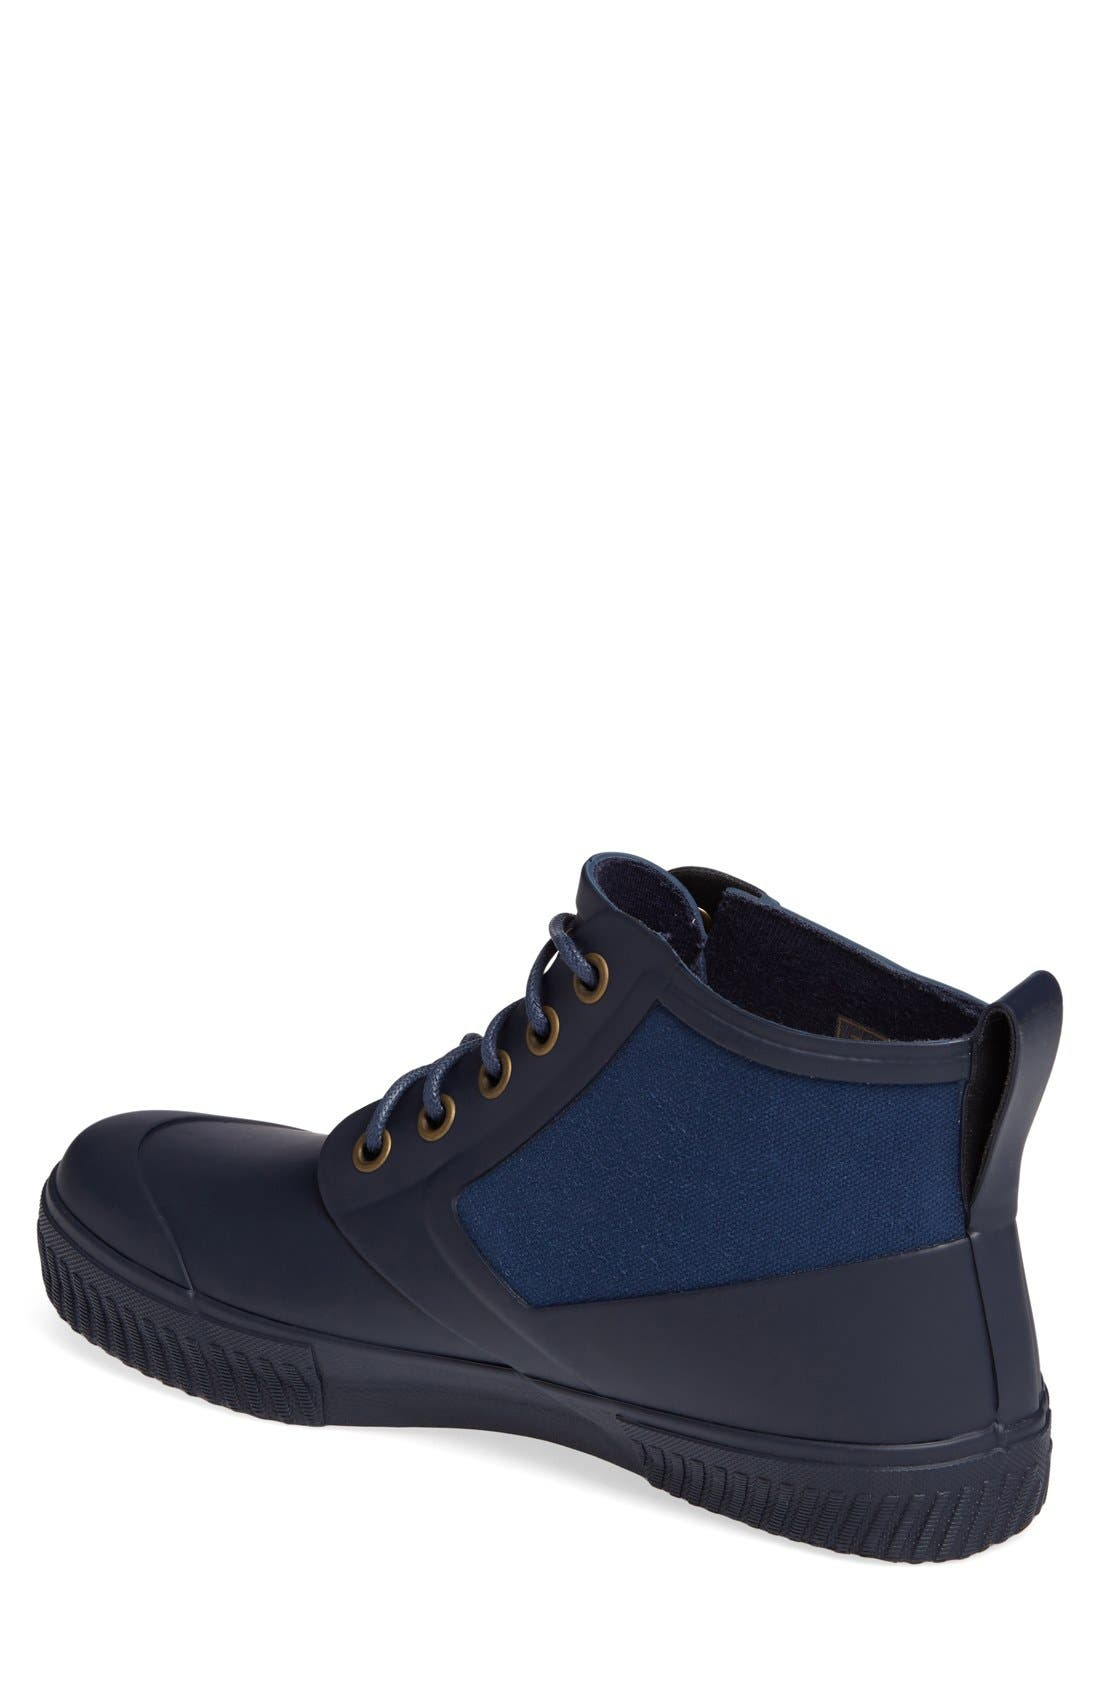 Mid Top Lace-Up Rain Boot,                             Alternate thumbnail 2, color,                             Navy